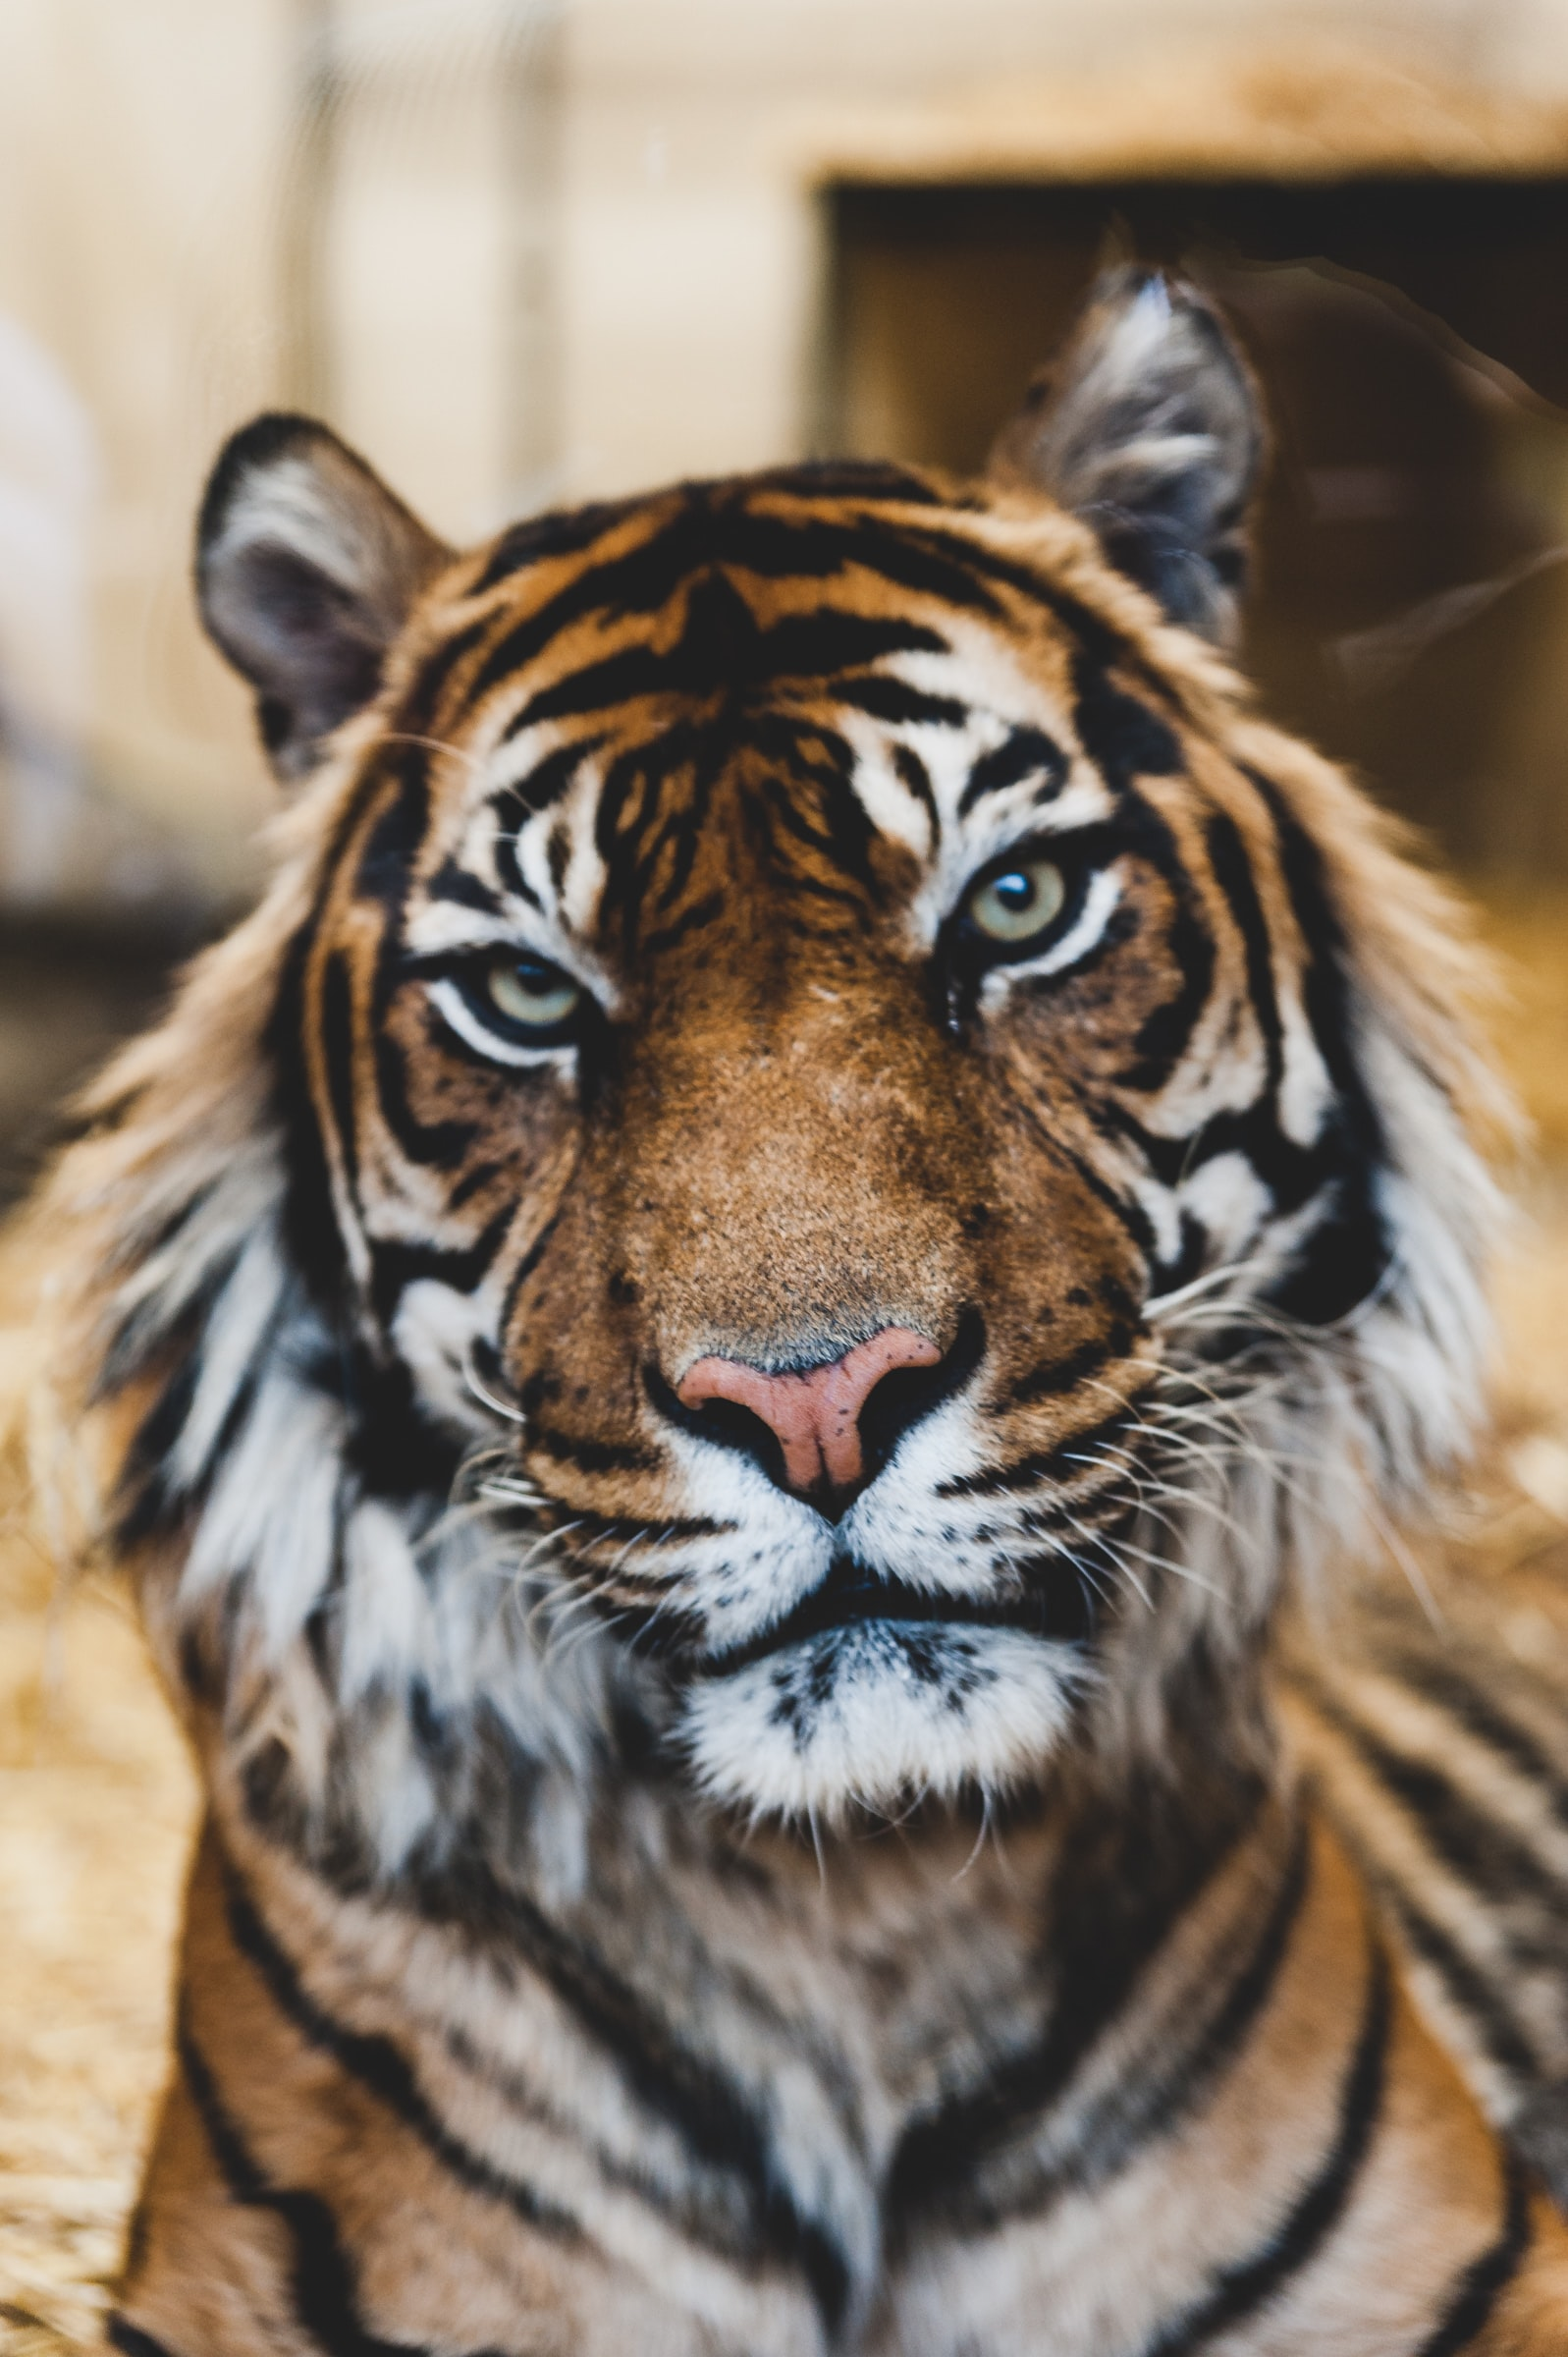 Tiger staring at camera at Edinburgh Zoo